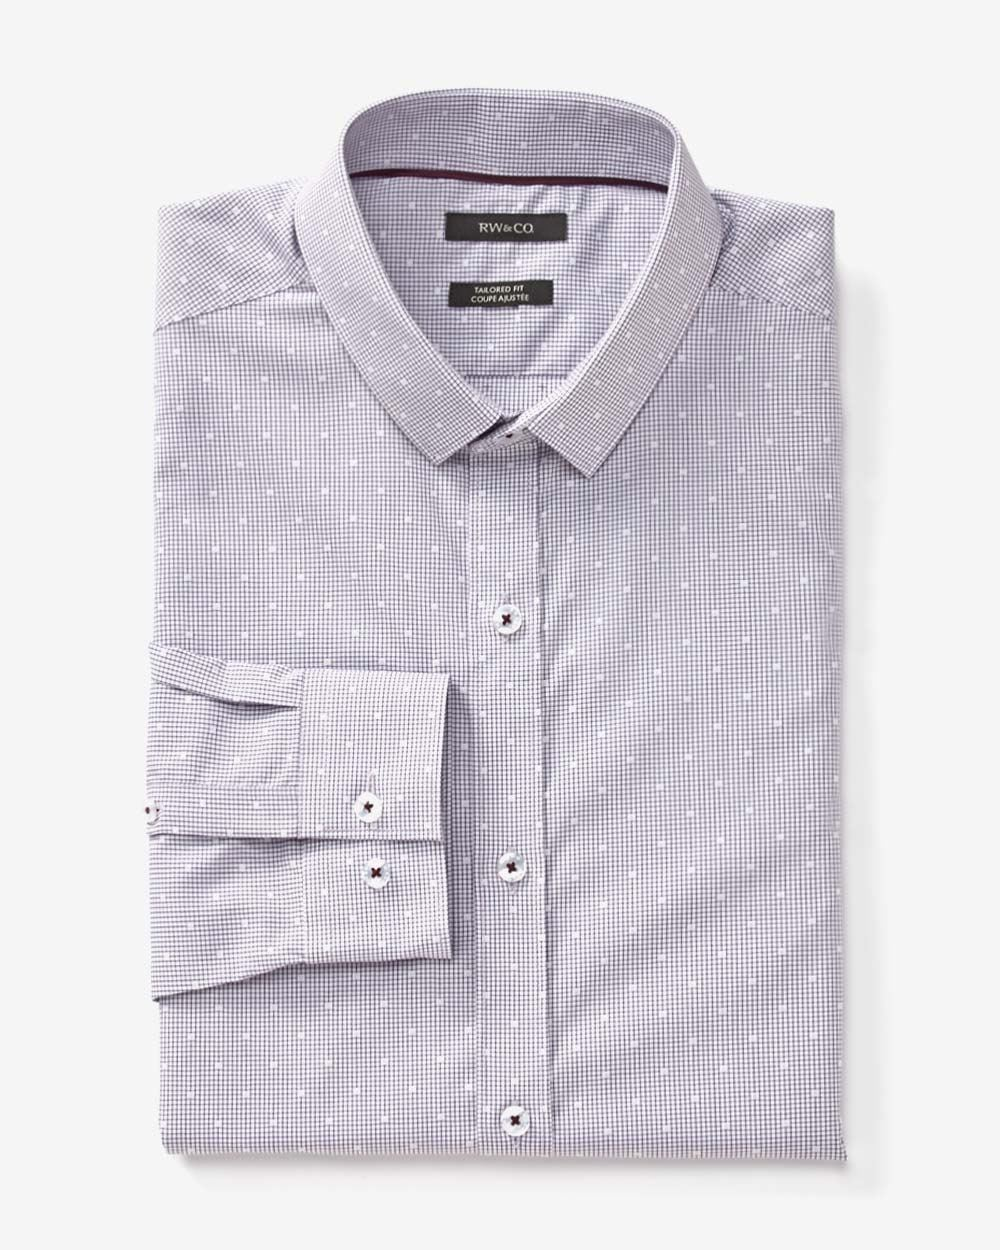 Tailored Fit Dobby Micro Check Dress Shirt Rw Co